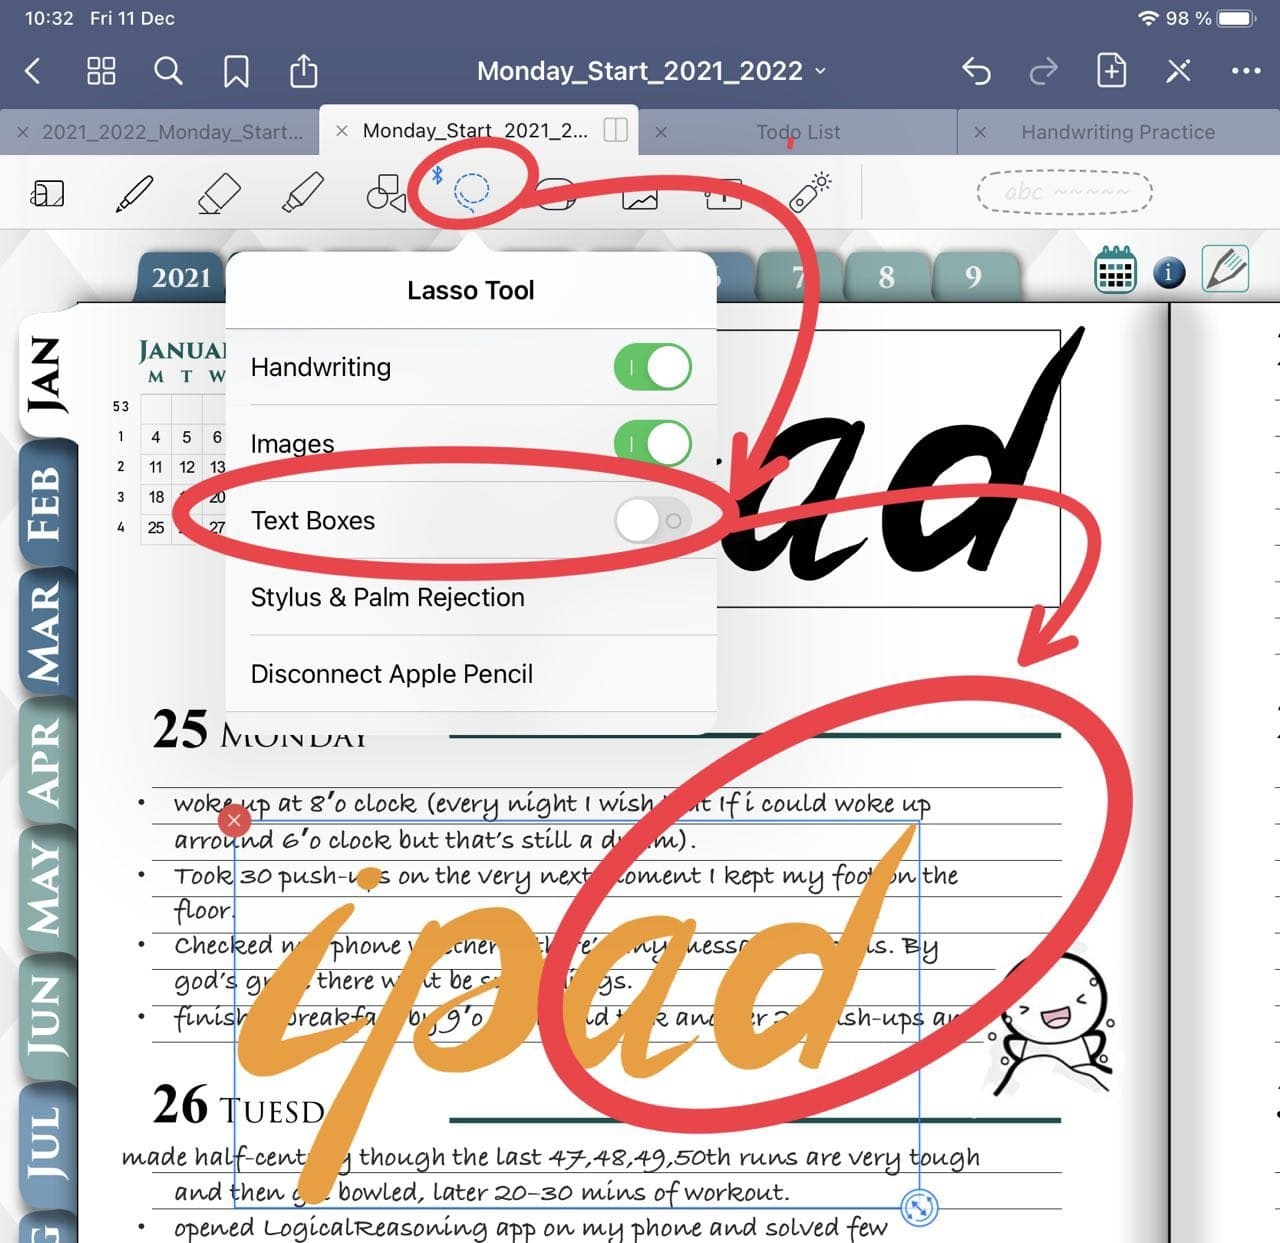 How to select different objects in goodnotes ipadplanner.com